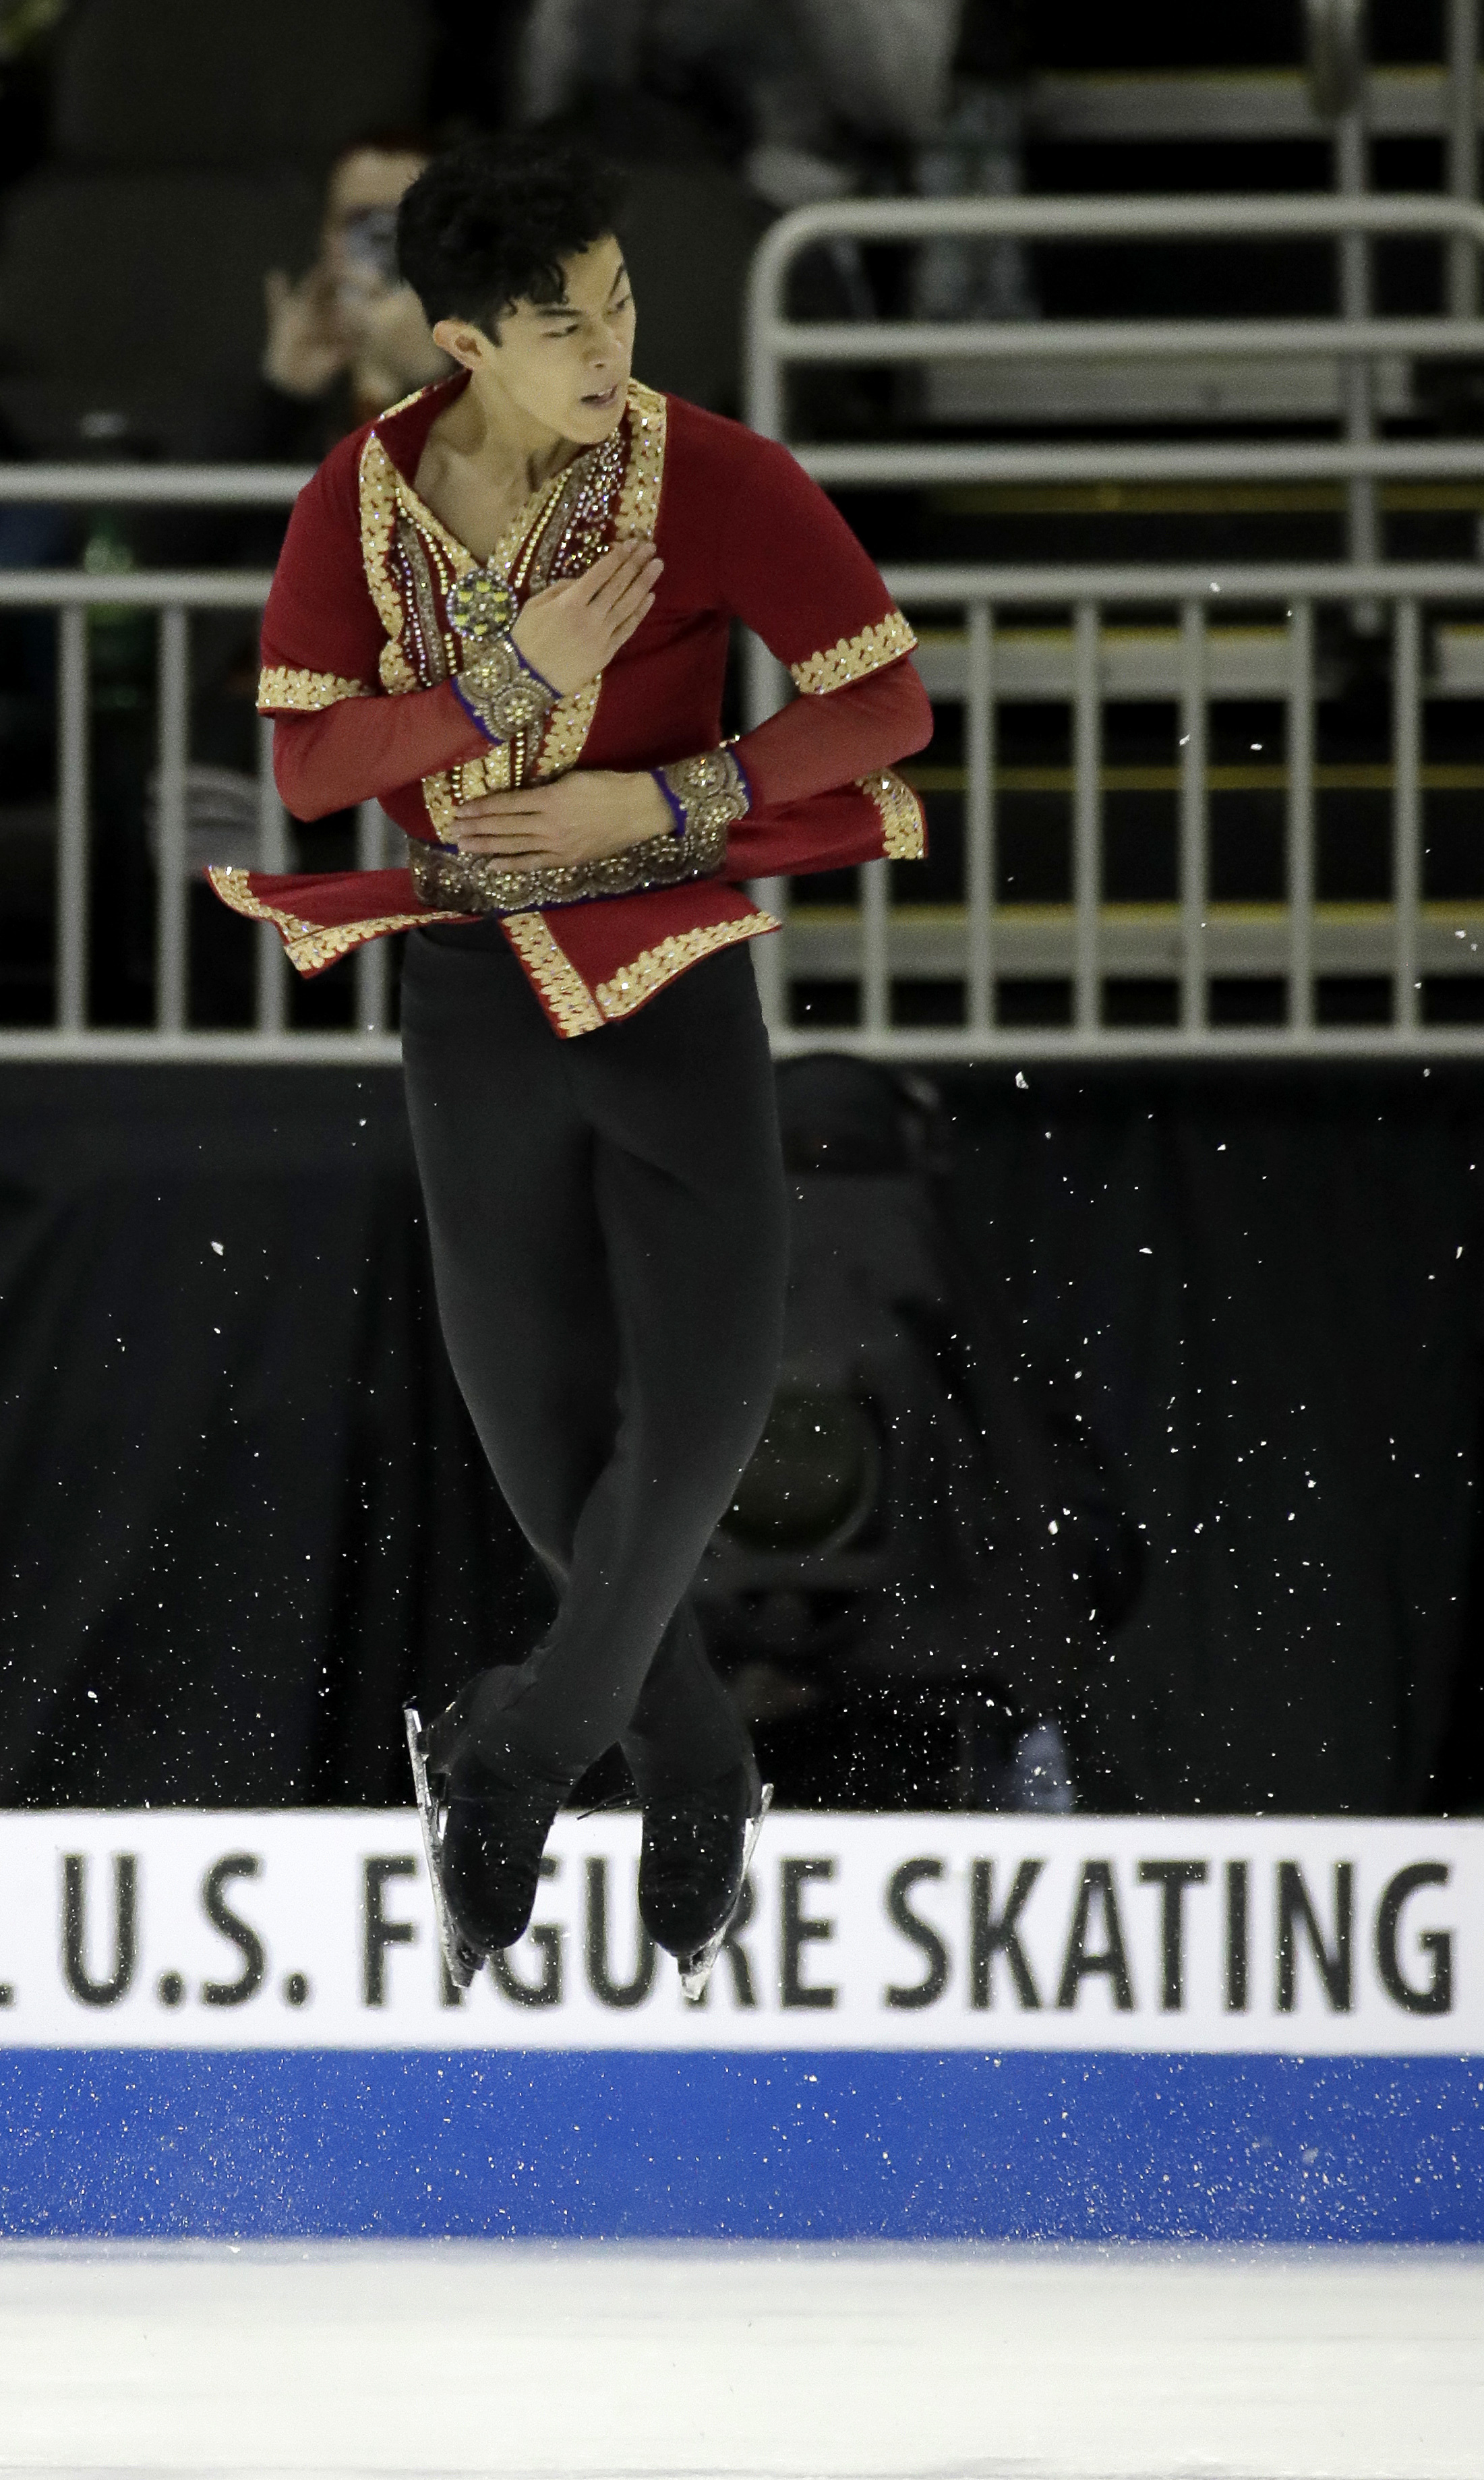 FILE - In this Jan. 22, 2017, file photo, Nathan Chen performs during the men's free skate at the U.S. Figure Skating Championships in Kansas City, Mo. Among those who thought the technical bar in men's skating couldn't go higher after the 2014 Olympics w